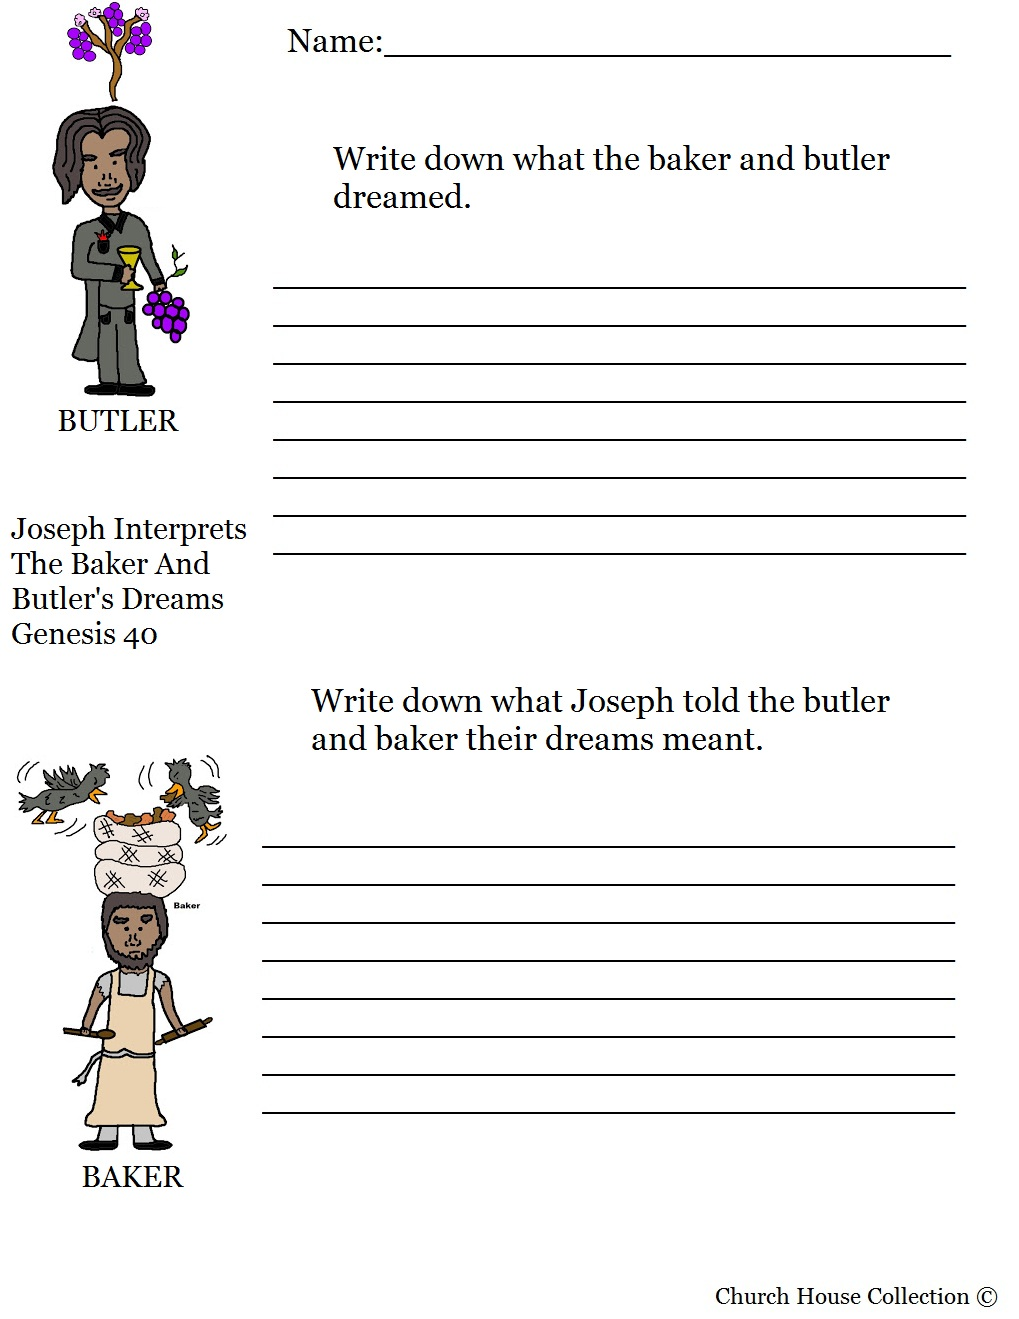 Joseph Interprets The Baker And Butlers Dream Activity Sheet For Childrens Church